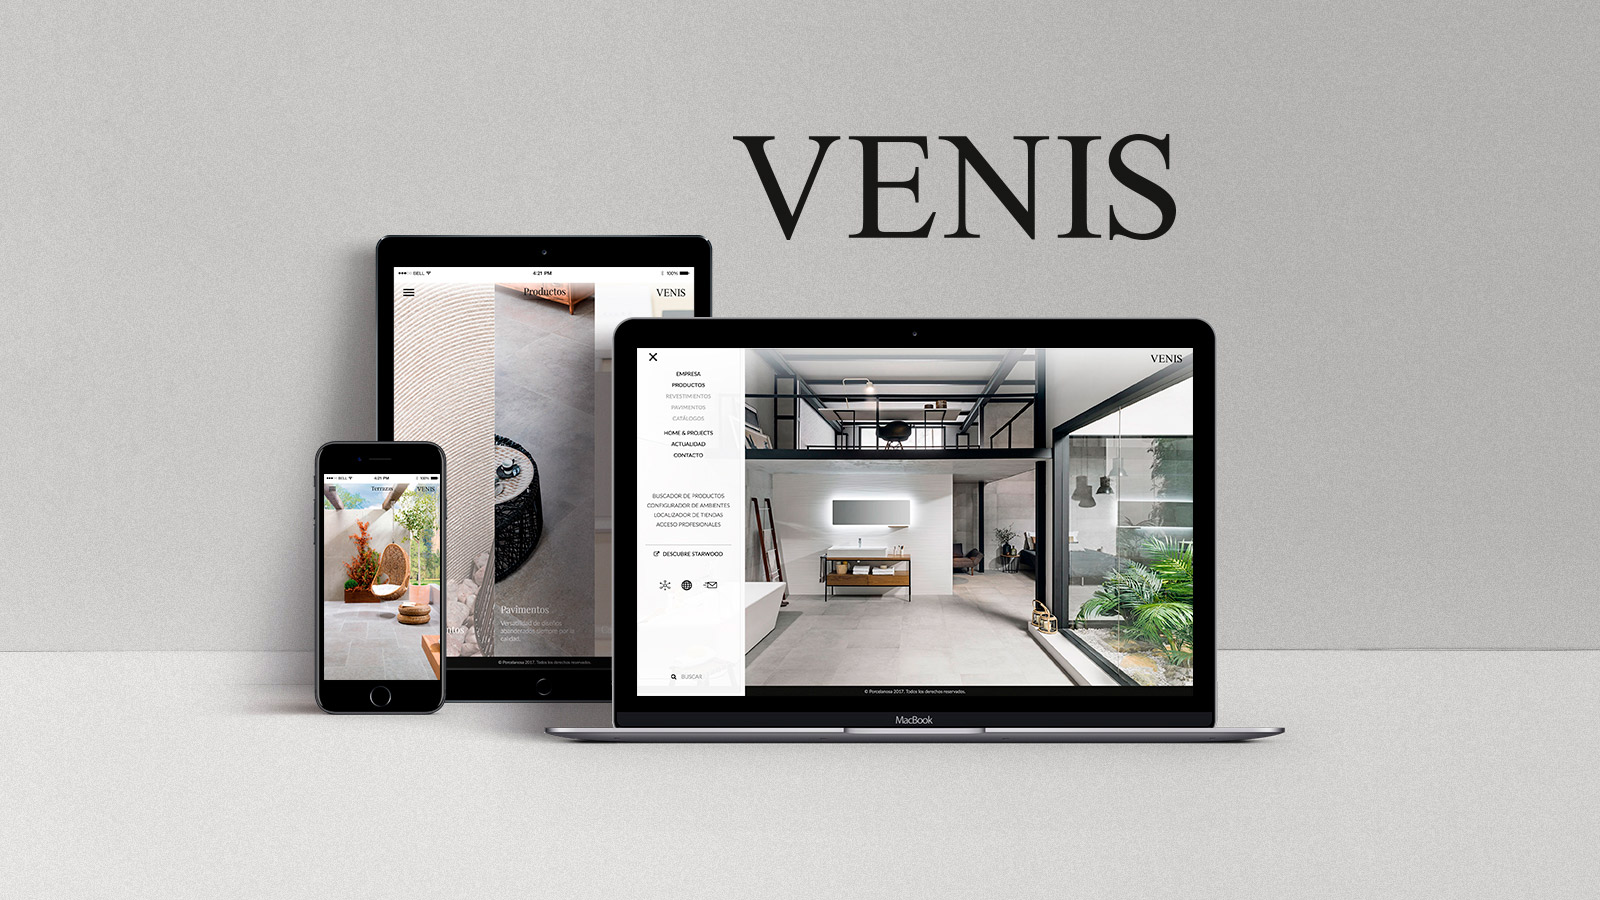 Venis presents its website and channels on the main social media networks